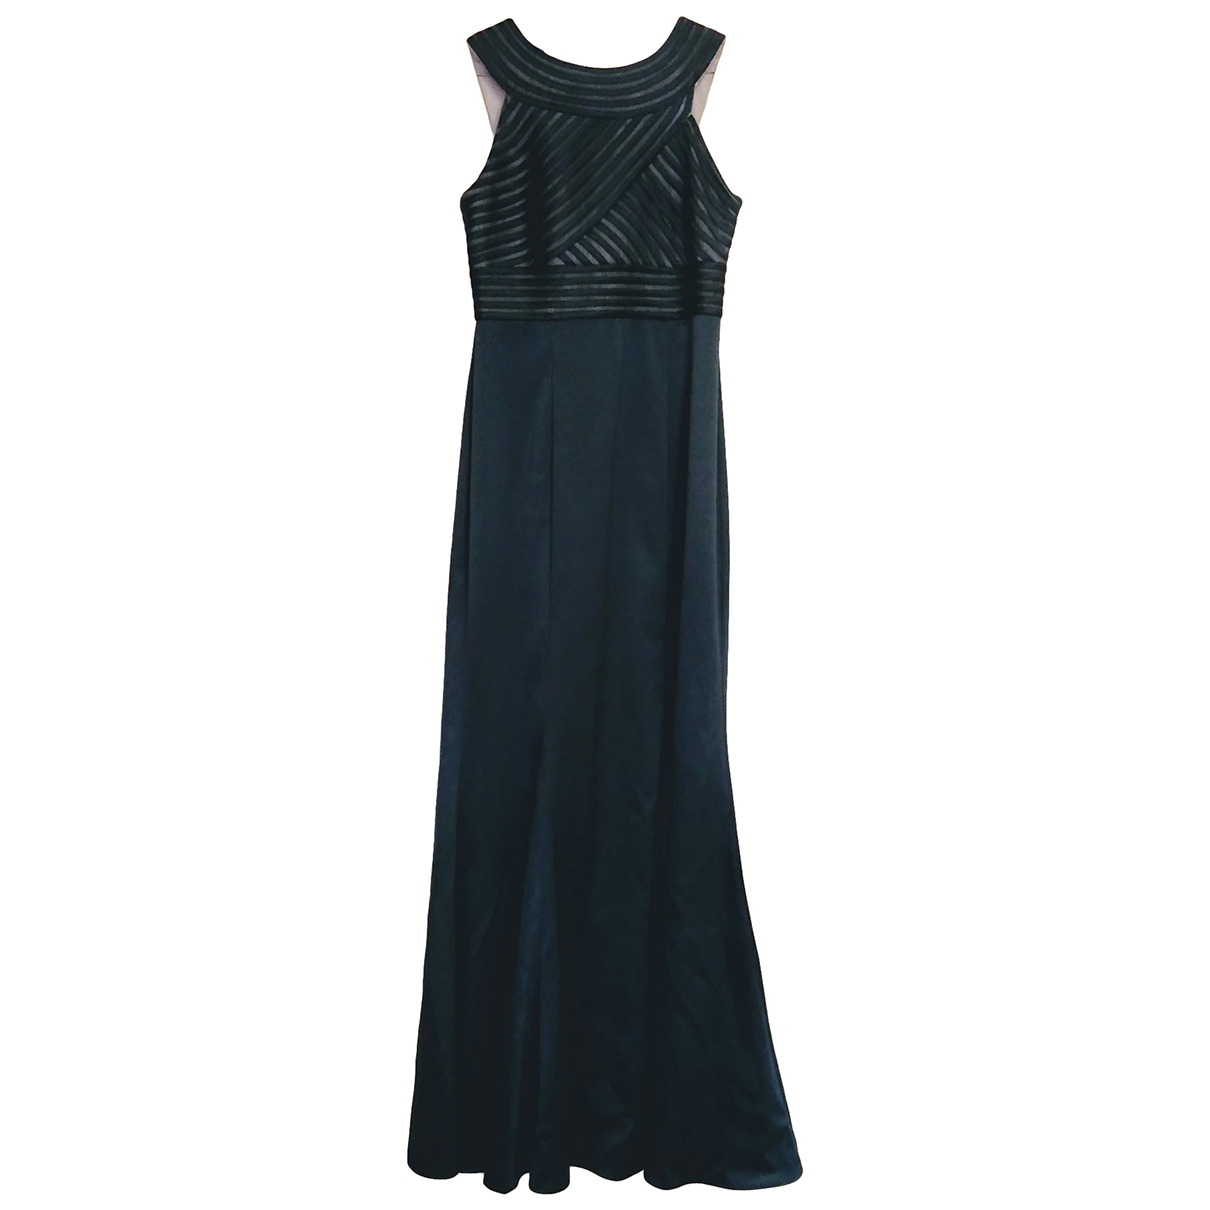 Js Collections \N Kleid in  Gruen Polyester